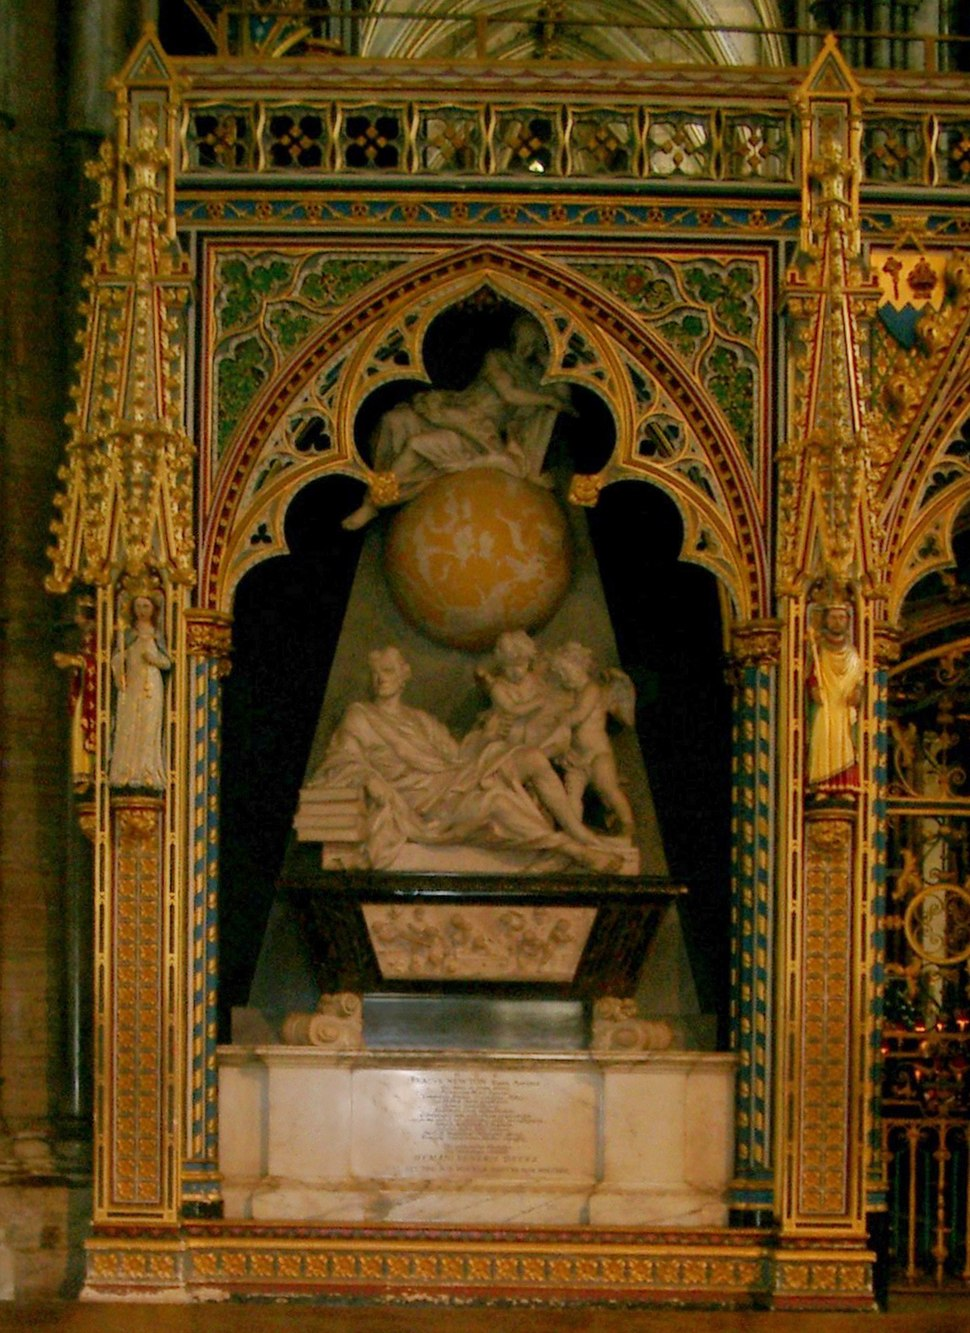 Isaac Newton grave in Westminster Abbey